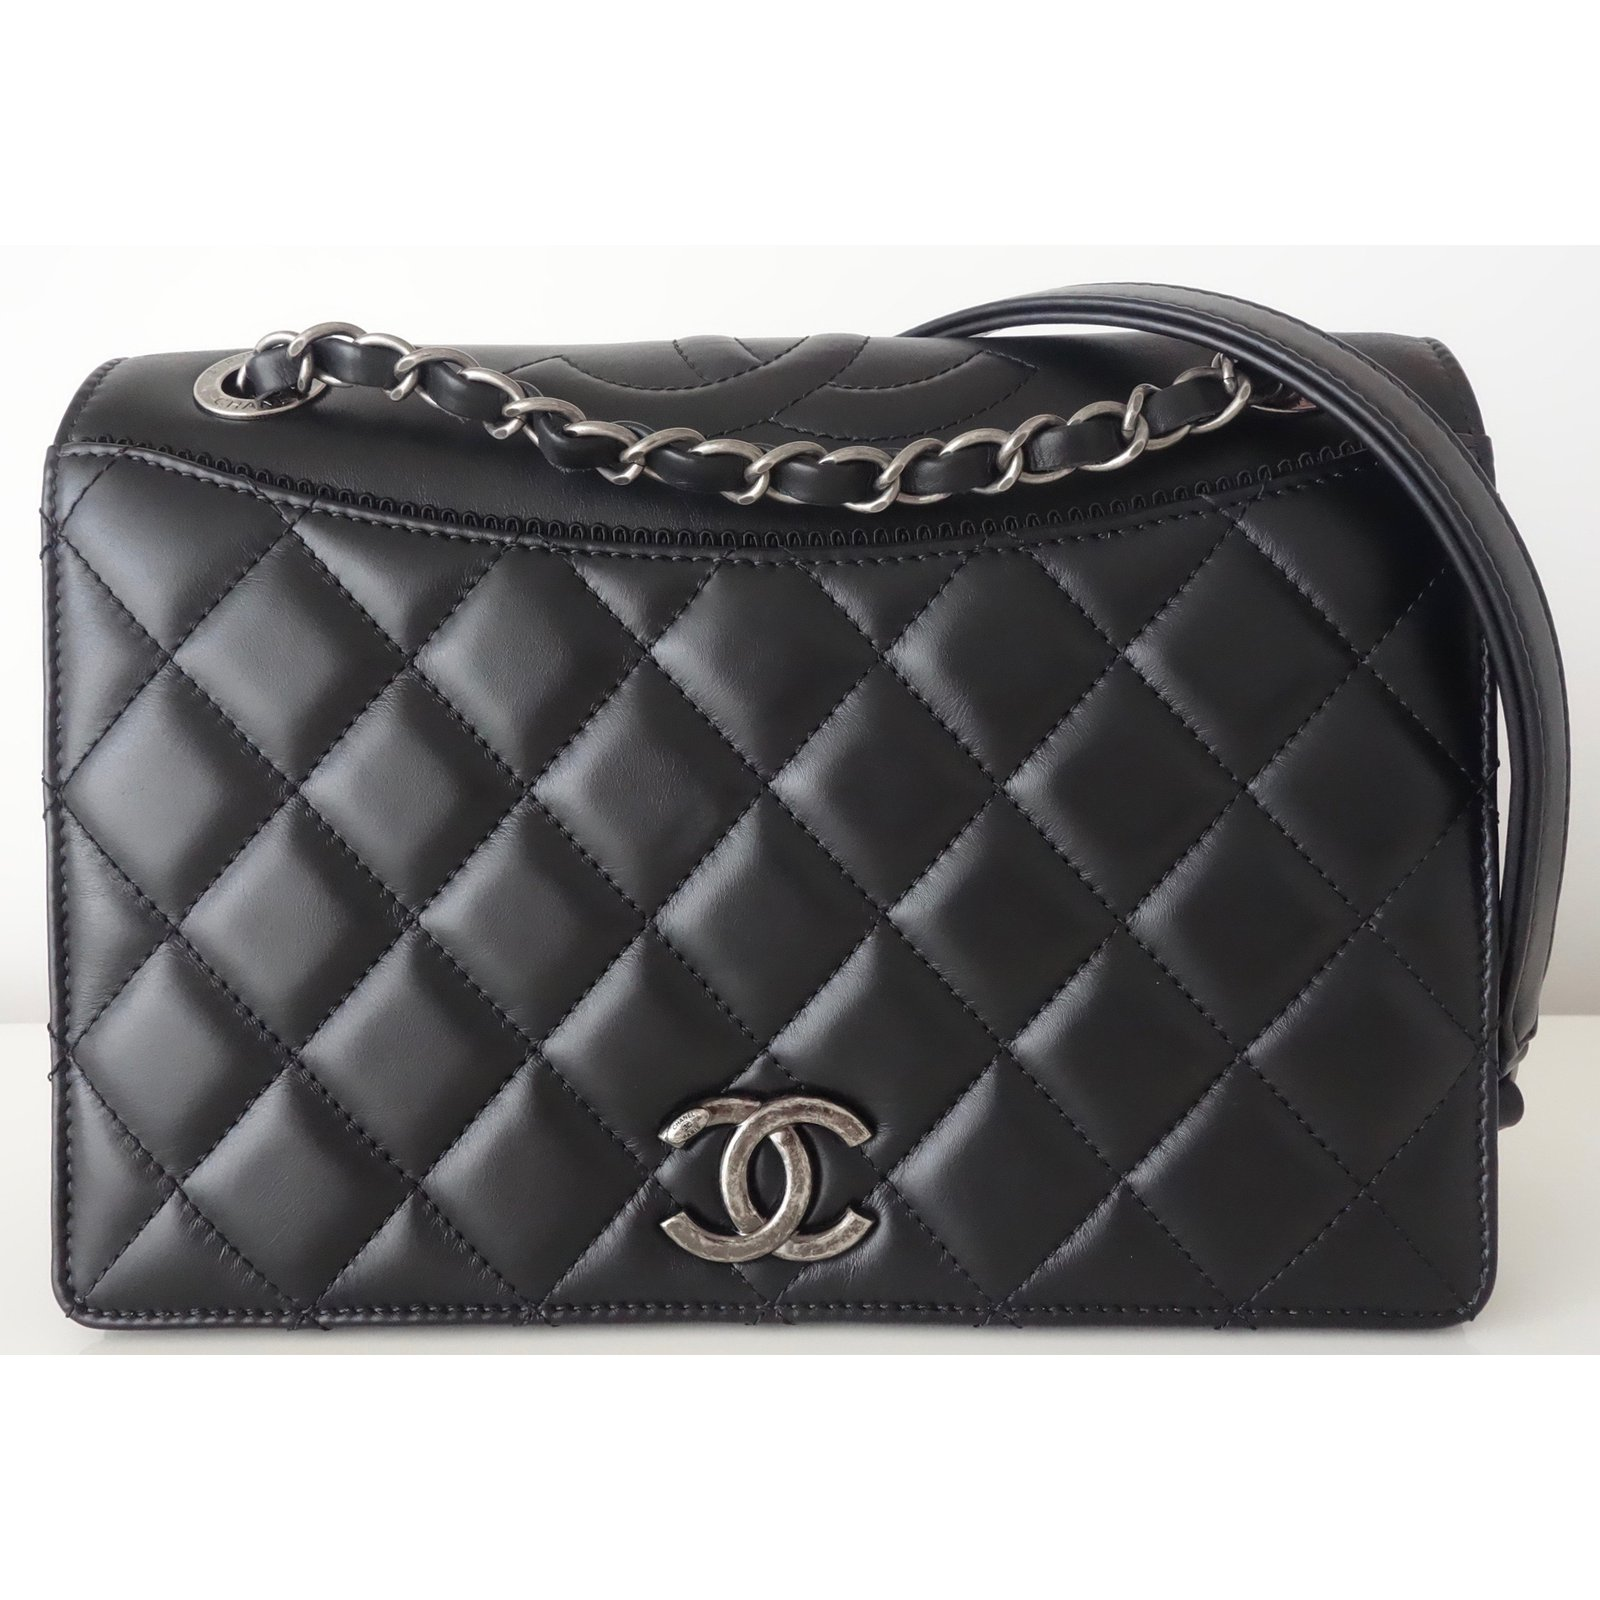 d27a94ab0a33a6 Chanel Handbags Handbags Leather Black ref.62990 - Joli Closet